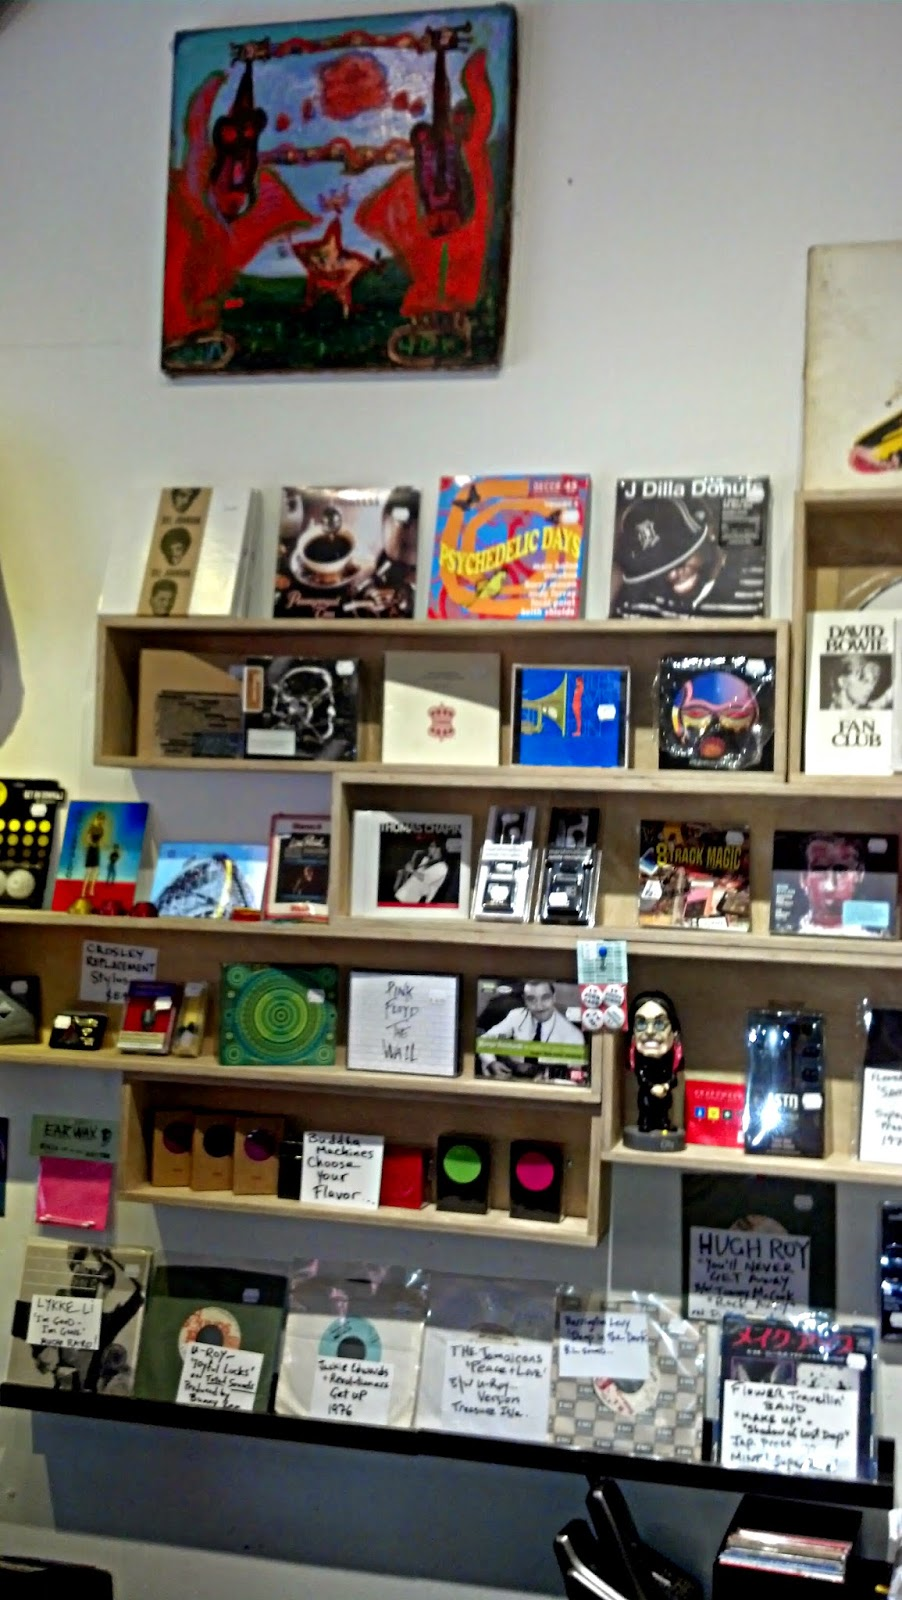 Earwax Records - Williamsburg Brooklyn NY - store interior